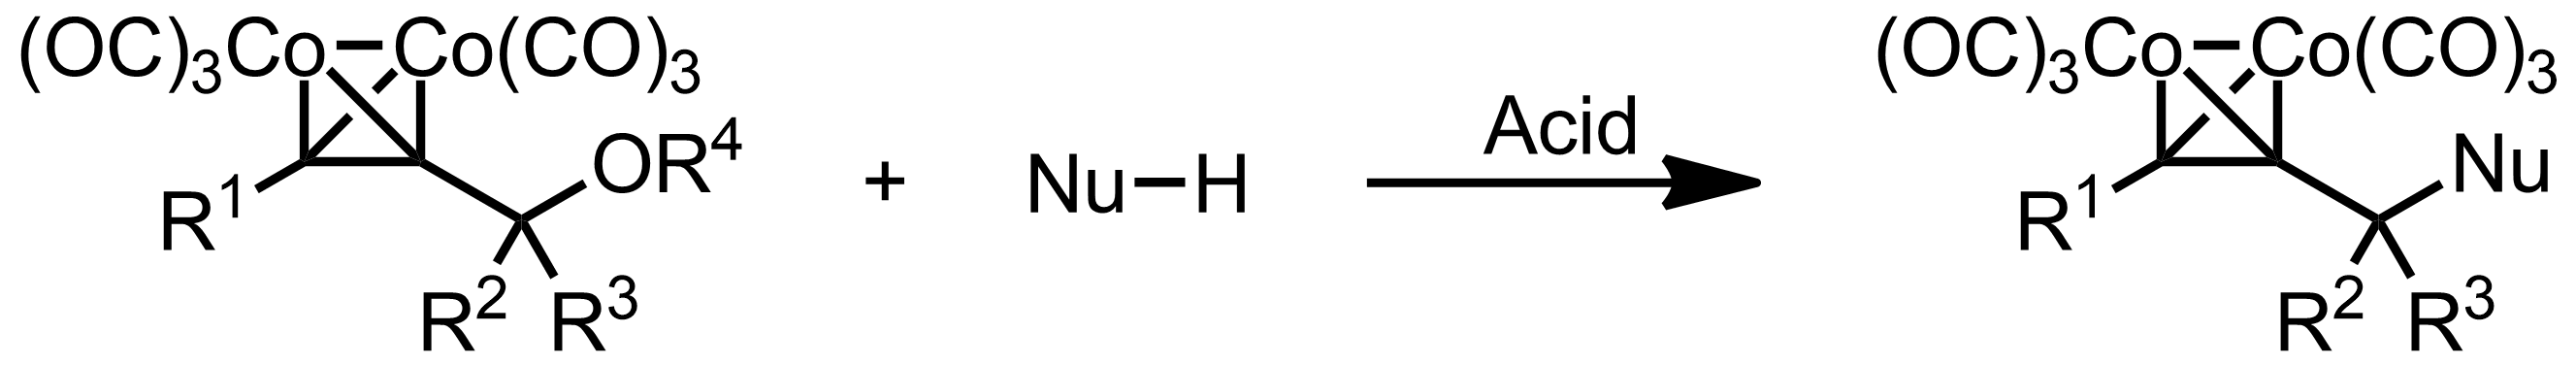 Schematic representation of the Nicholas Reaction.